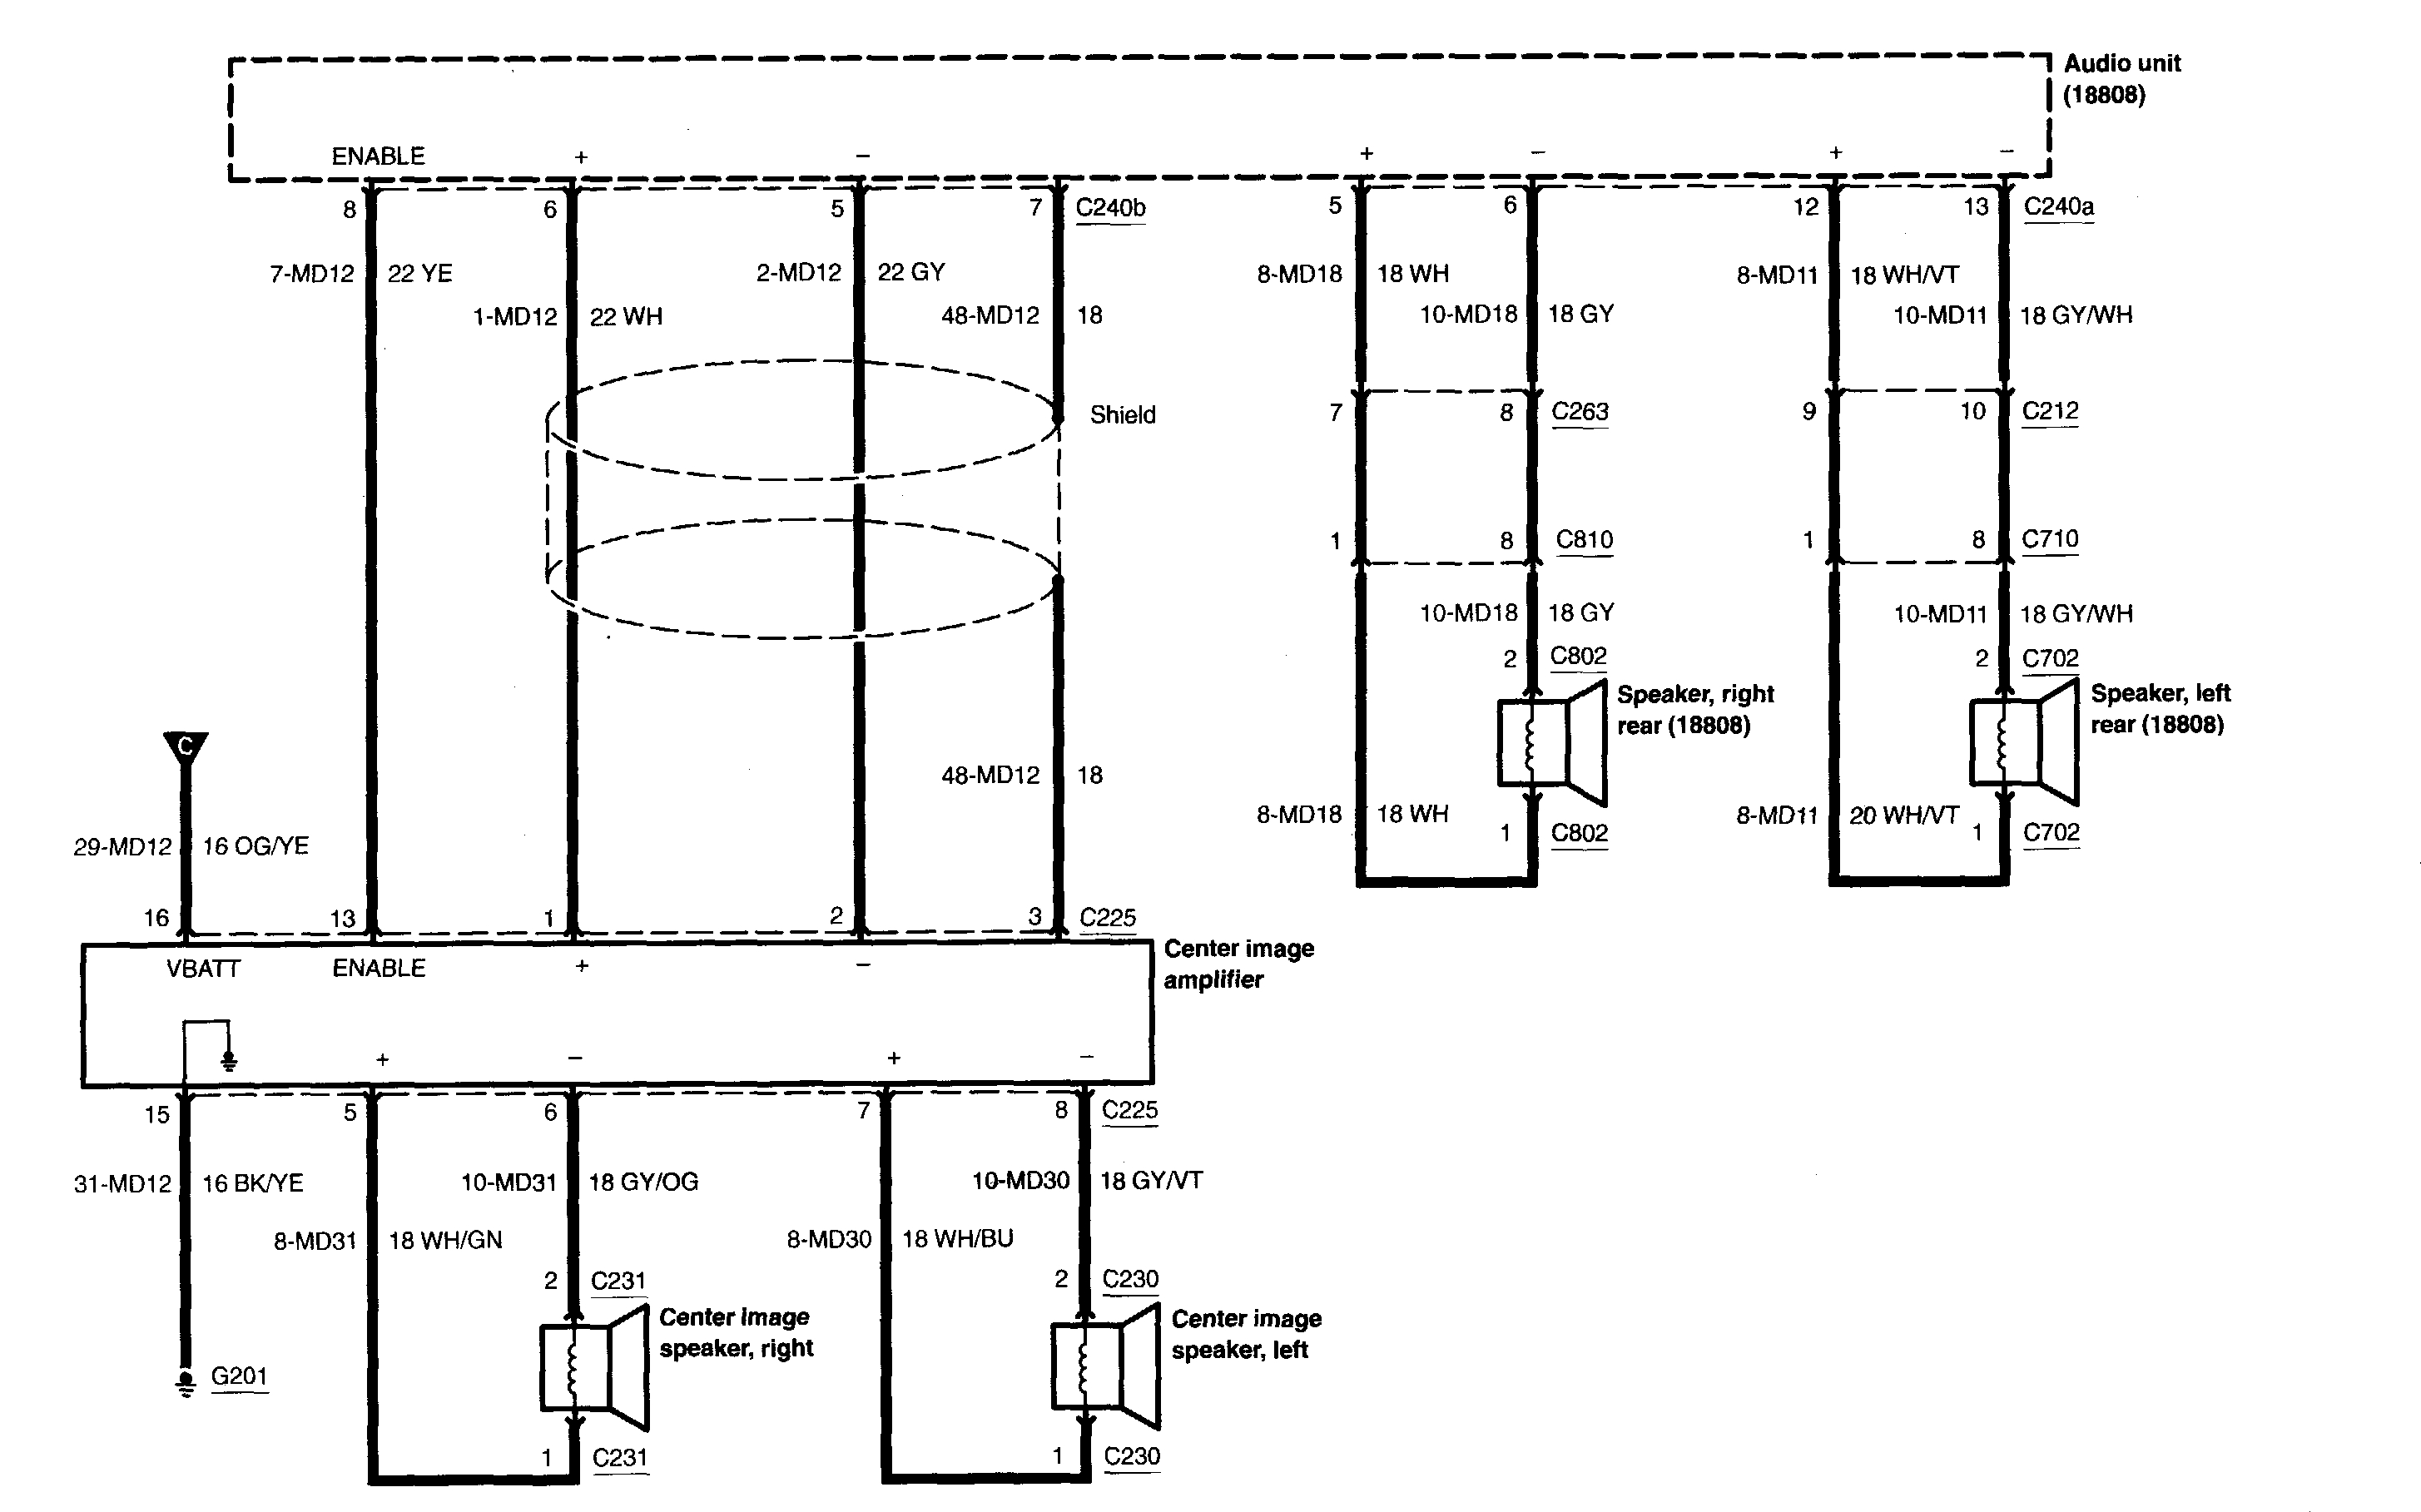 Center Channel Speaker Wiring Diagram | Wiring Library - Center Channel Speaker Wiring Diagram